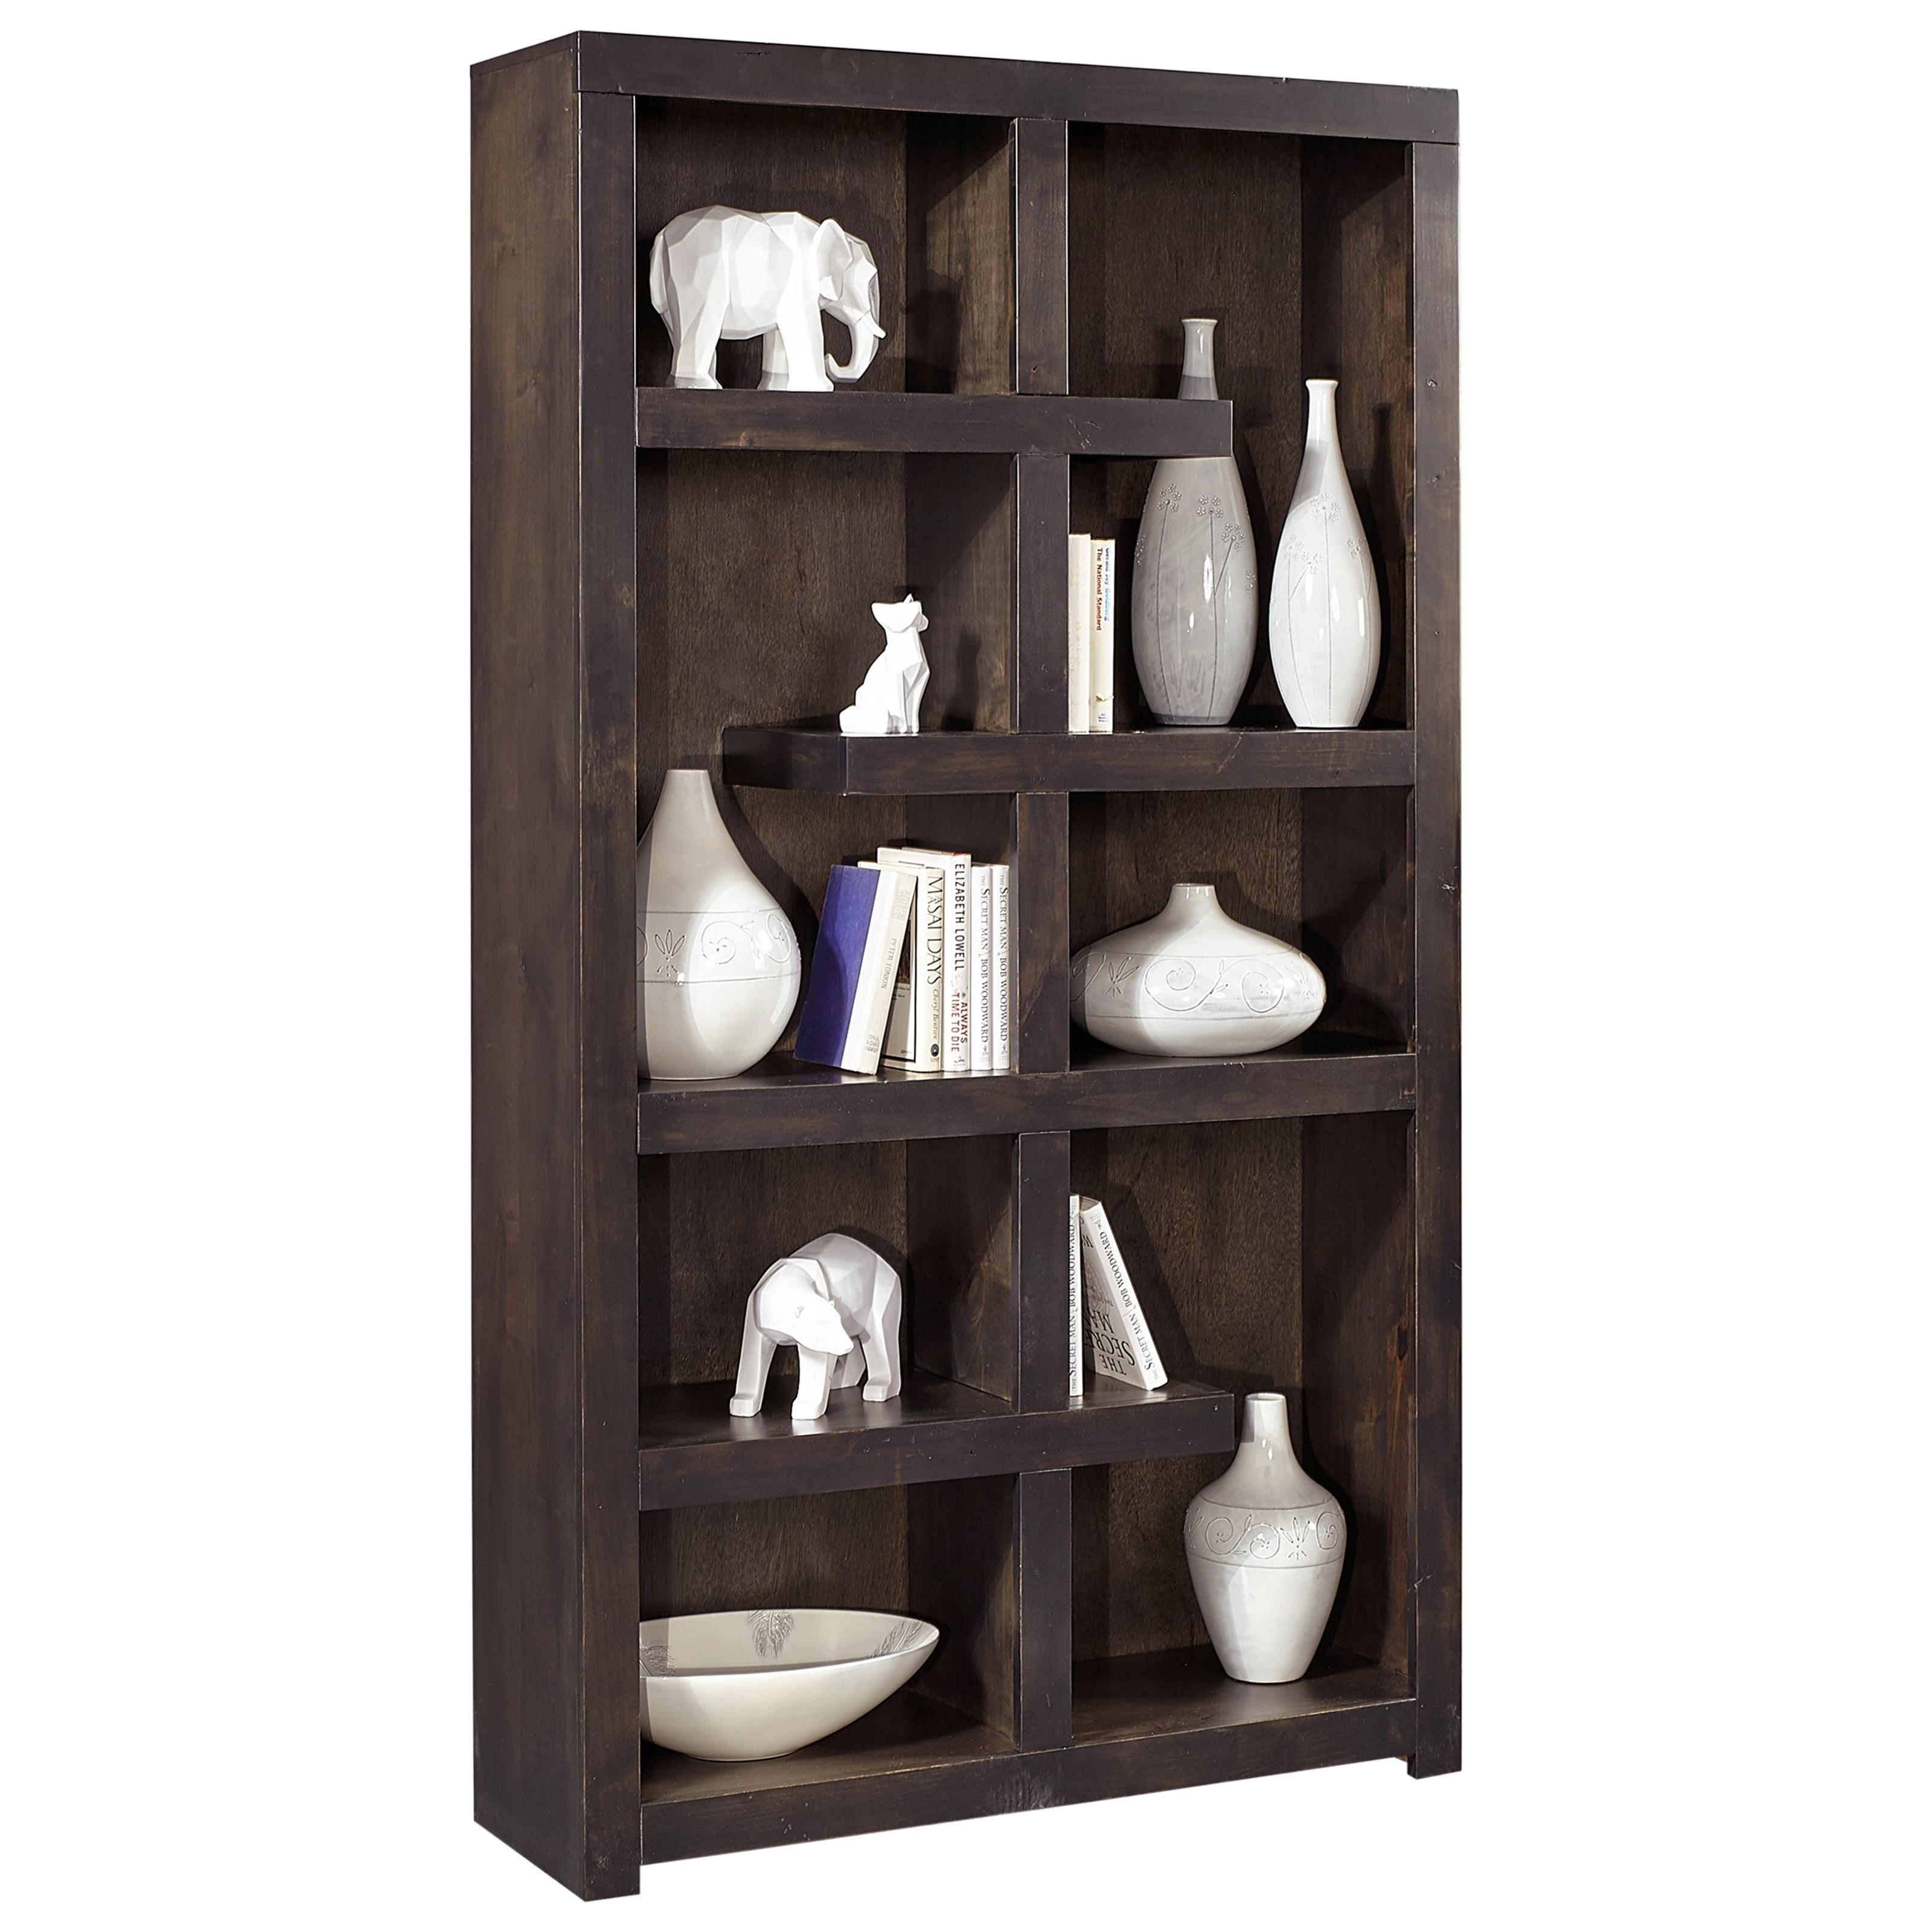 "Avery Loft 76"" Open Book Case by Aspenhome at Walker's Furniture"